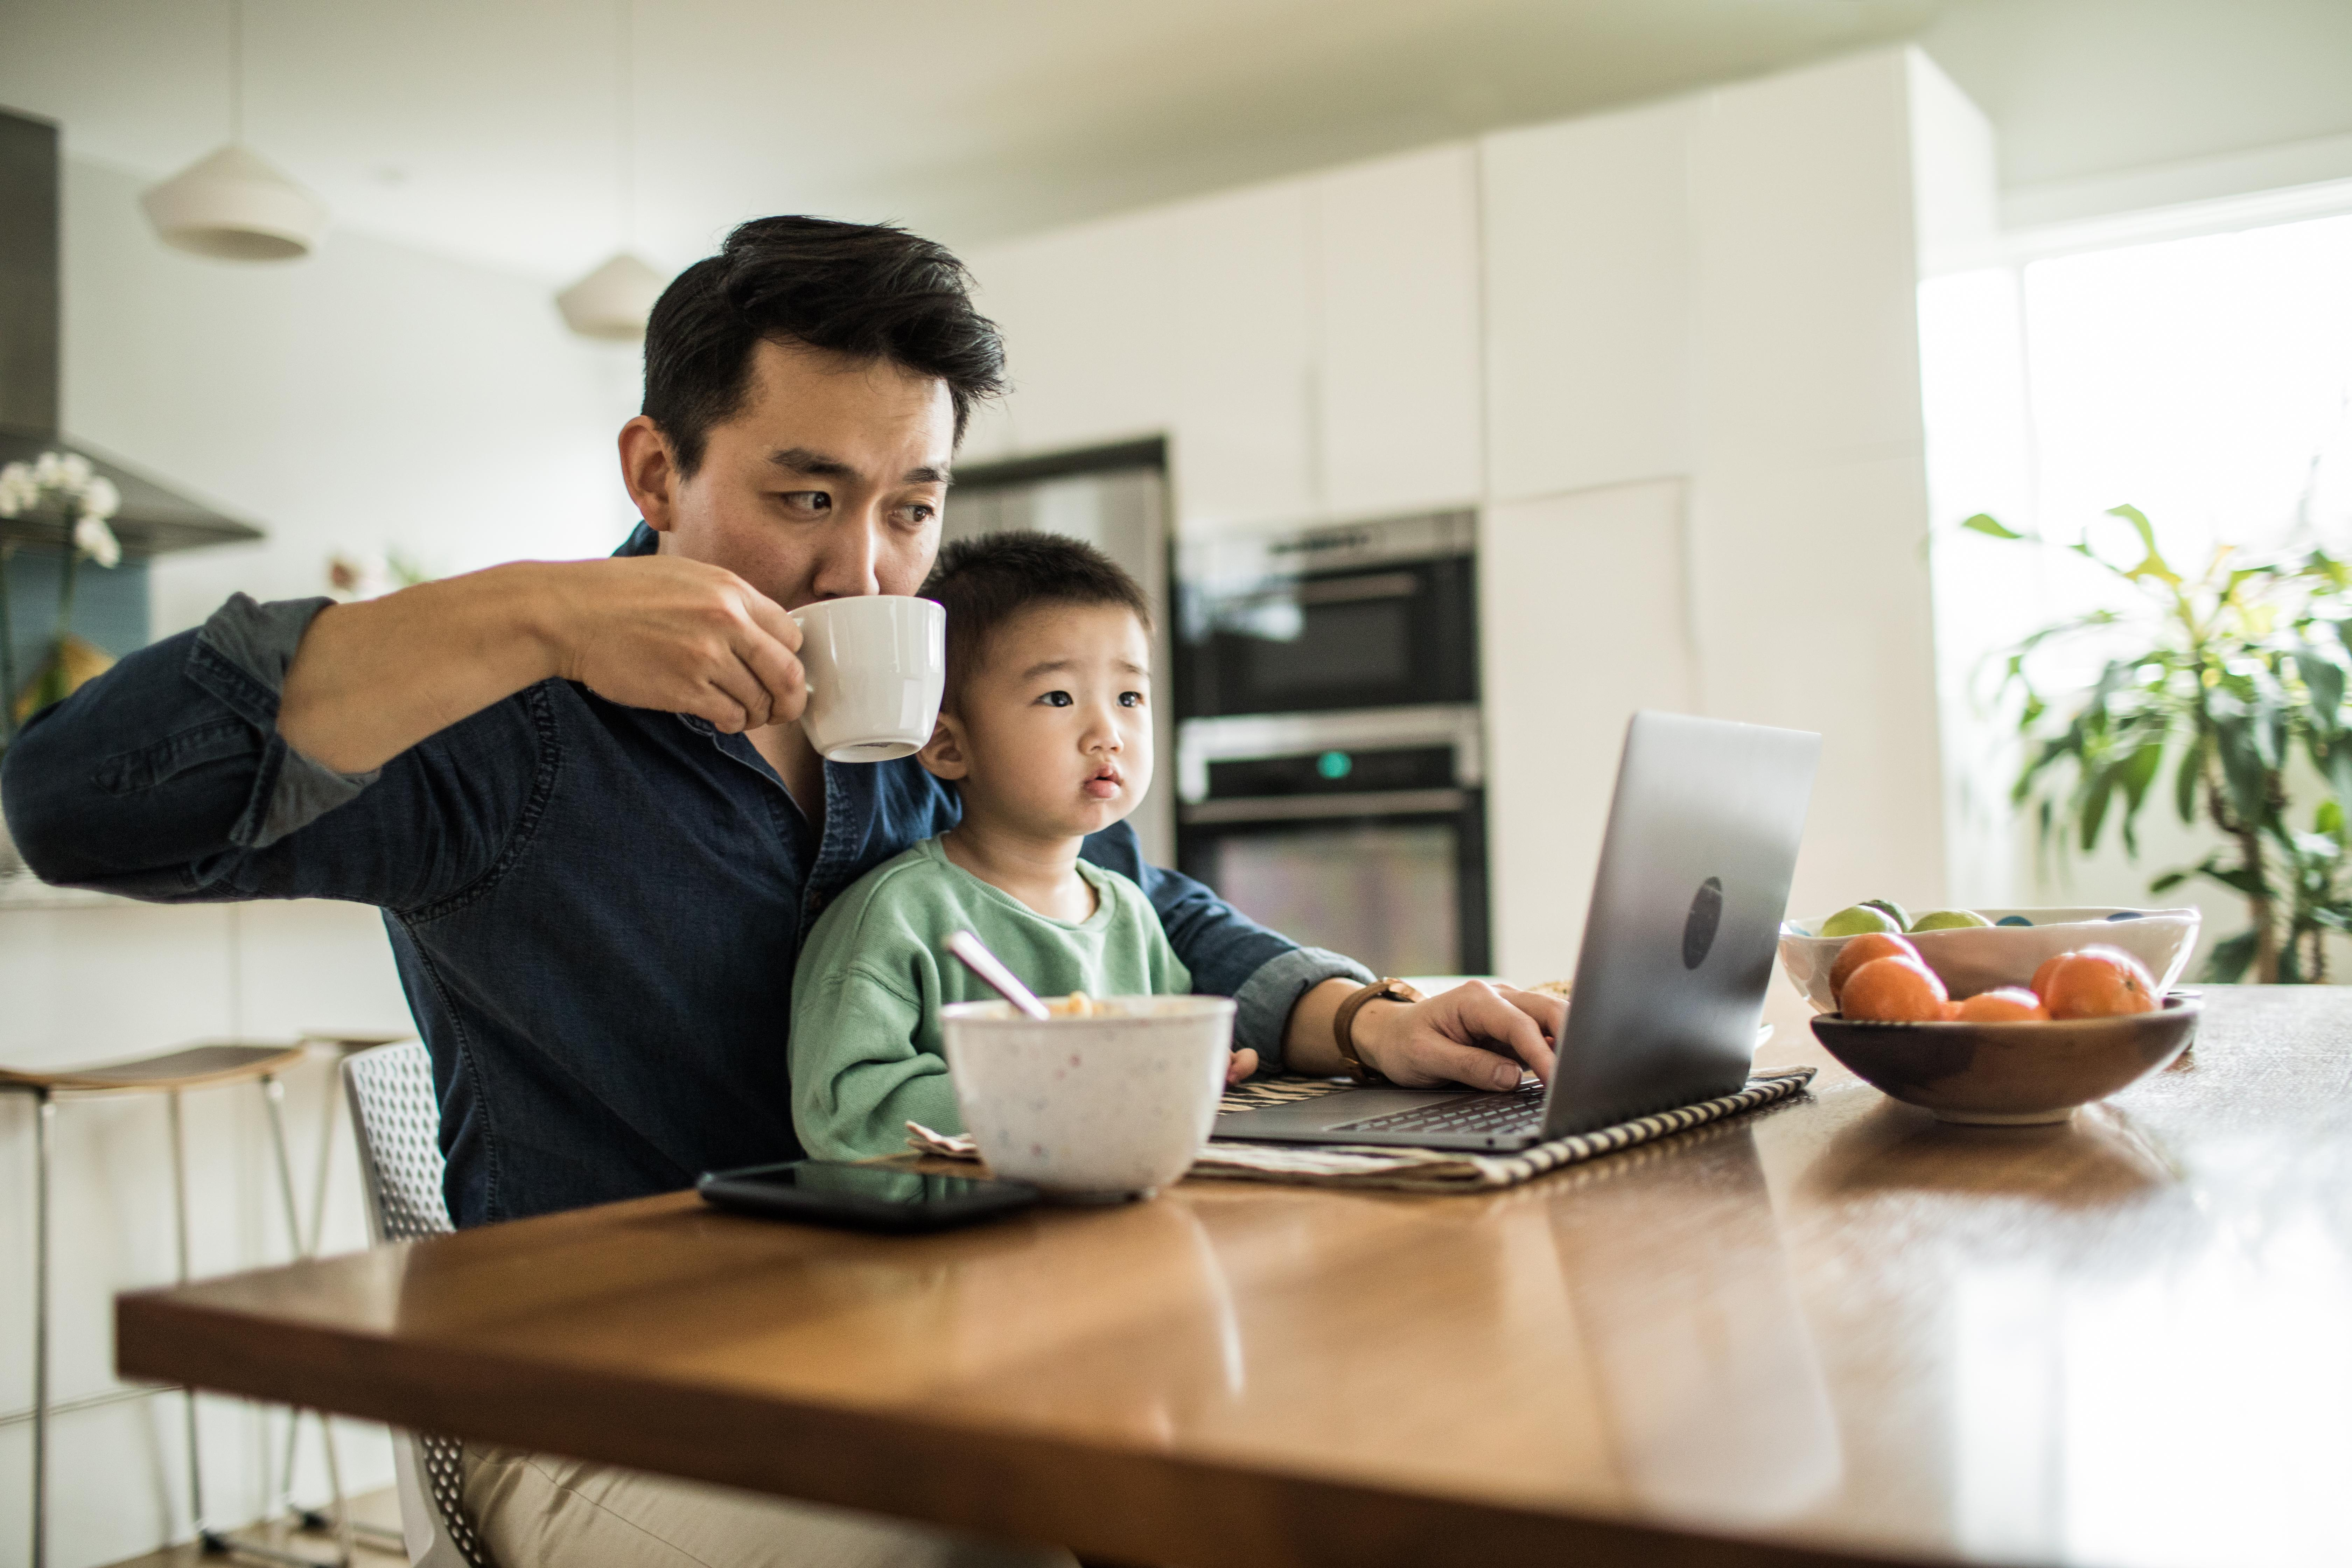 Parents are more productive working at home than workers without kids: Study